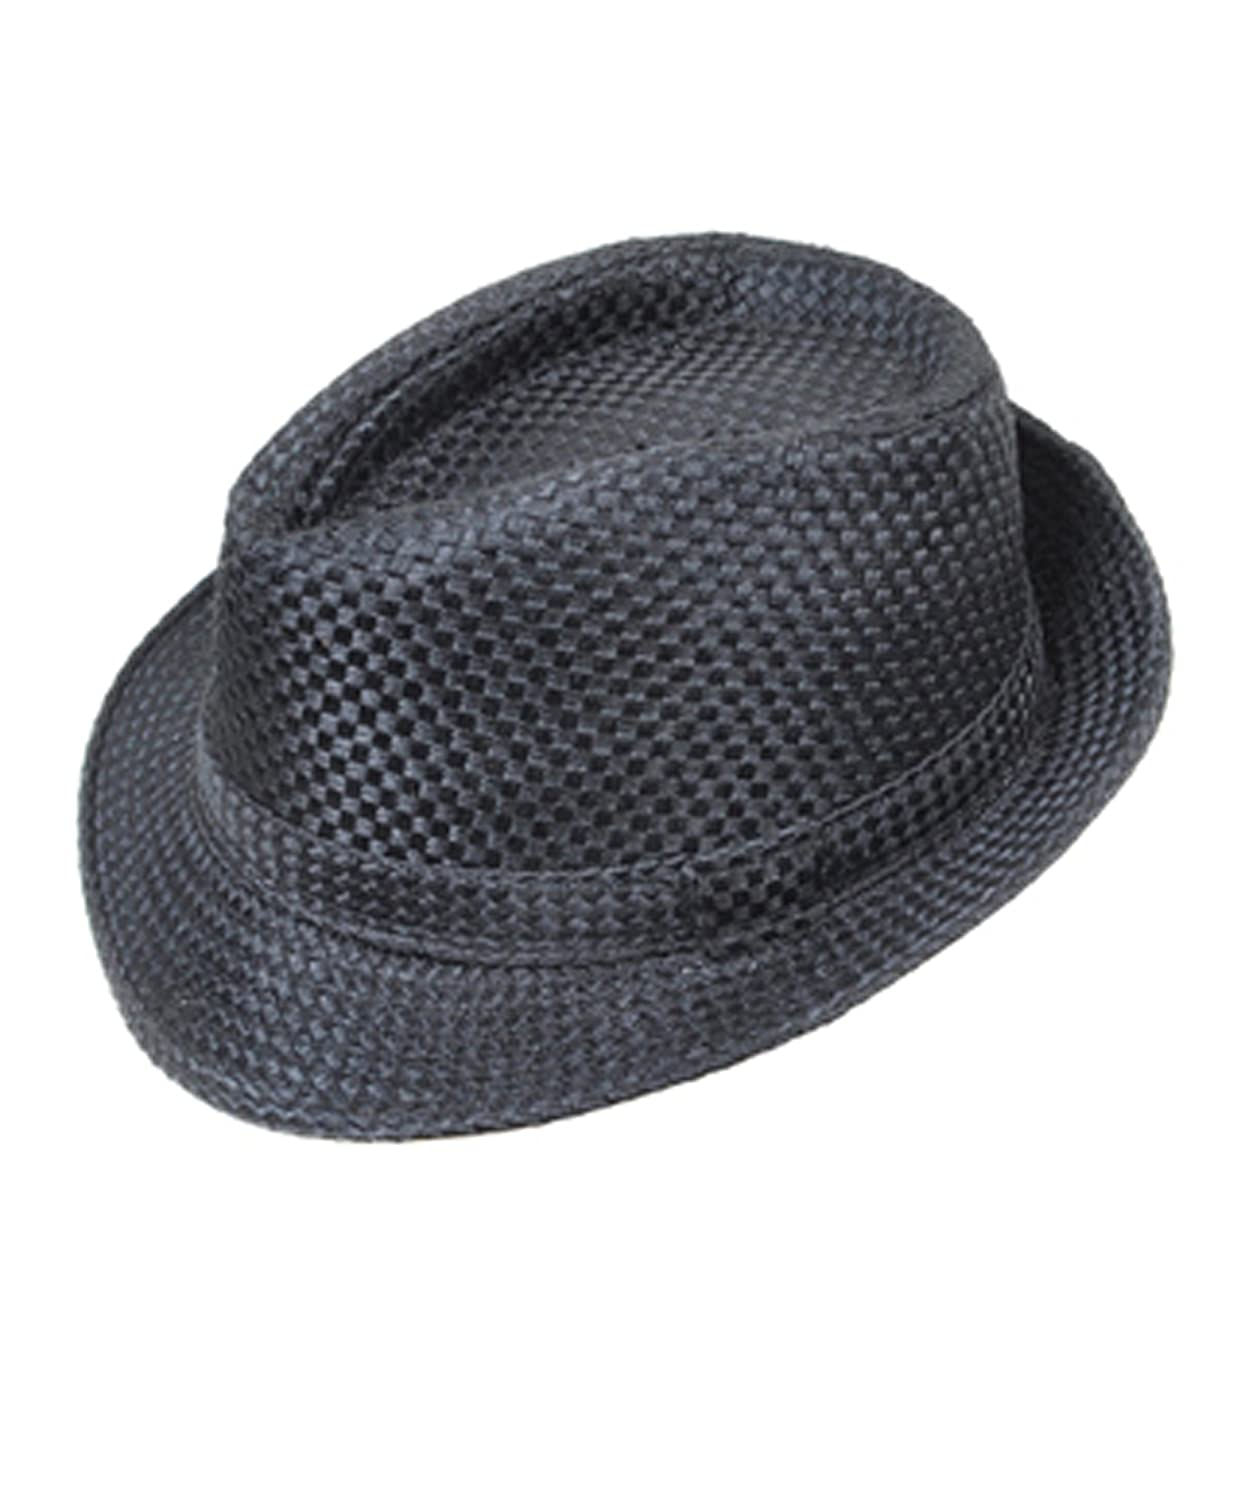 d536357617468 Jet Black Straw Fedora Hat